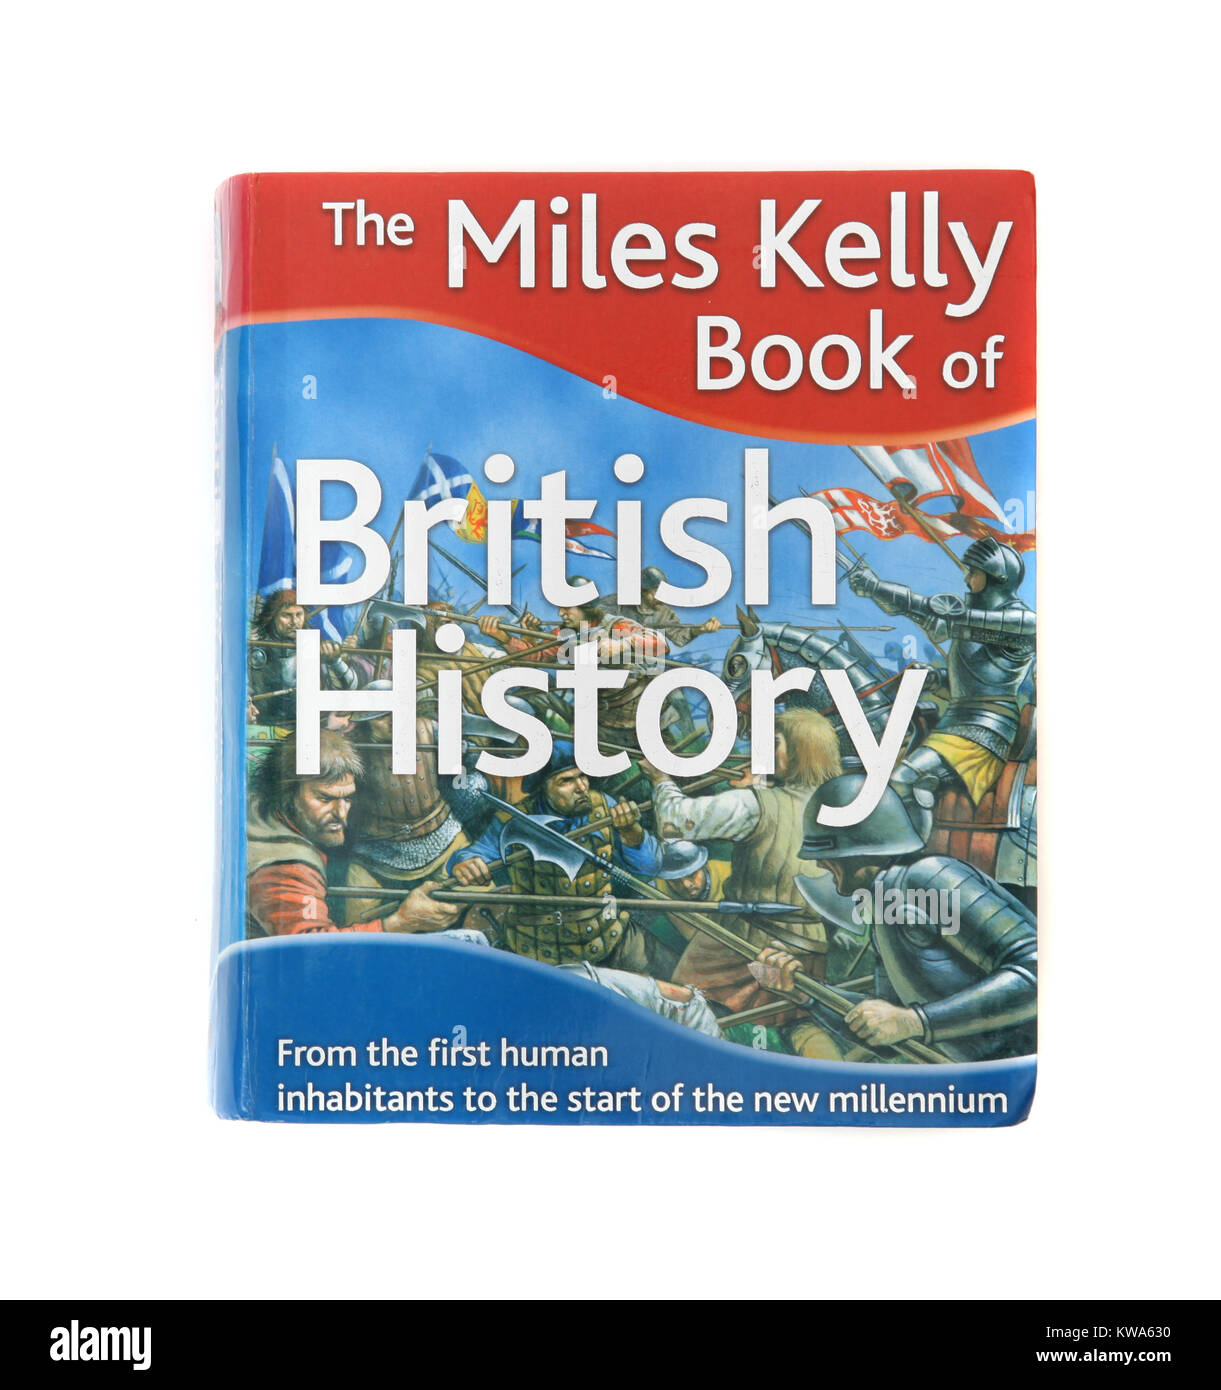 The Miles Kelly book of British History - Stock Image